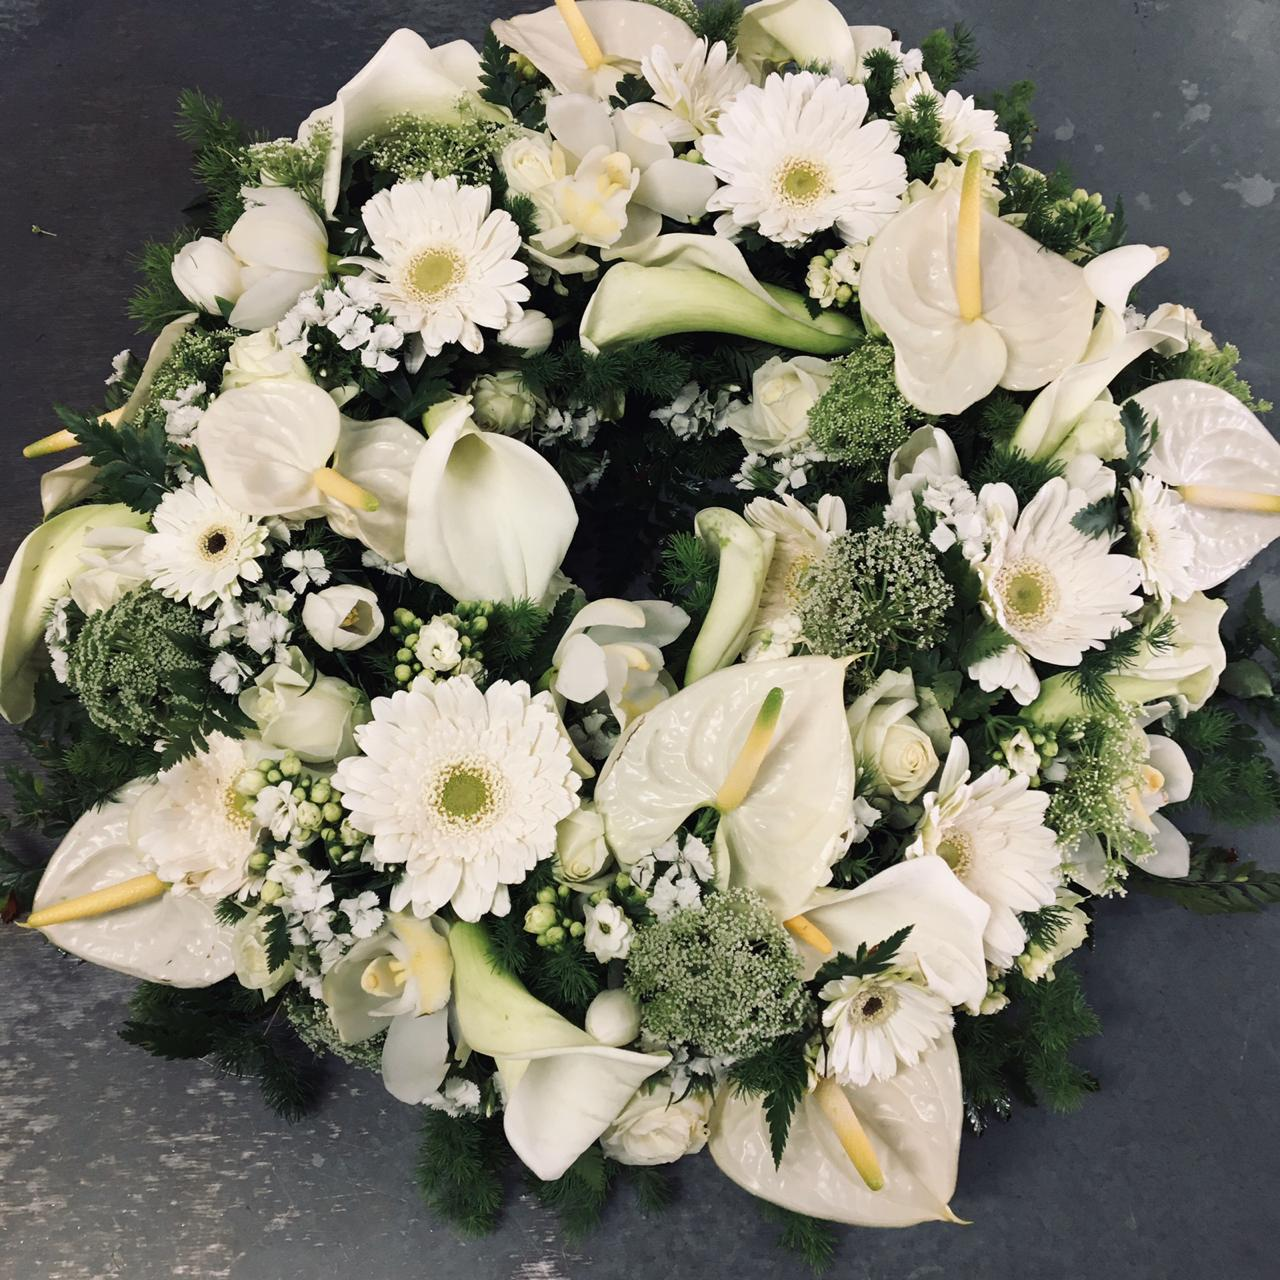 White flowers in the shape of a circular wreath from